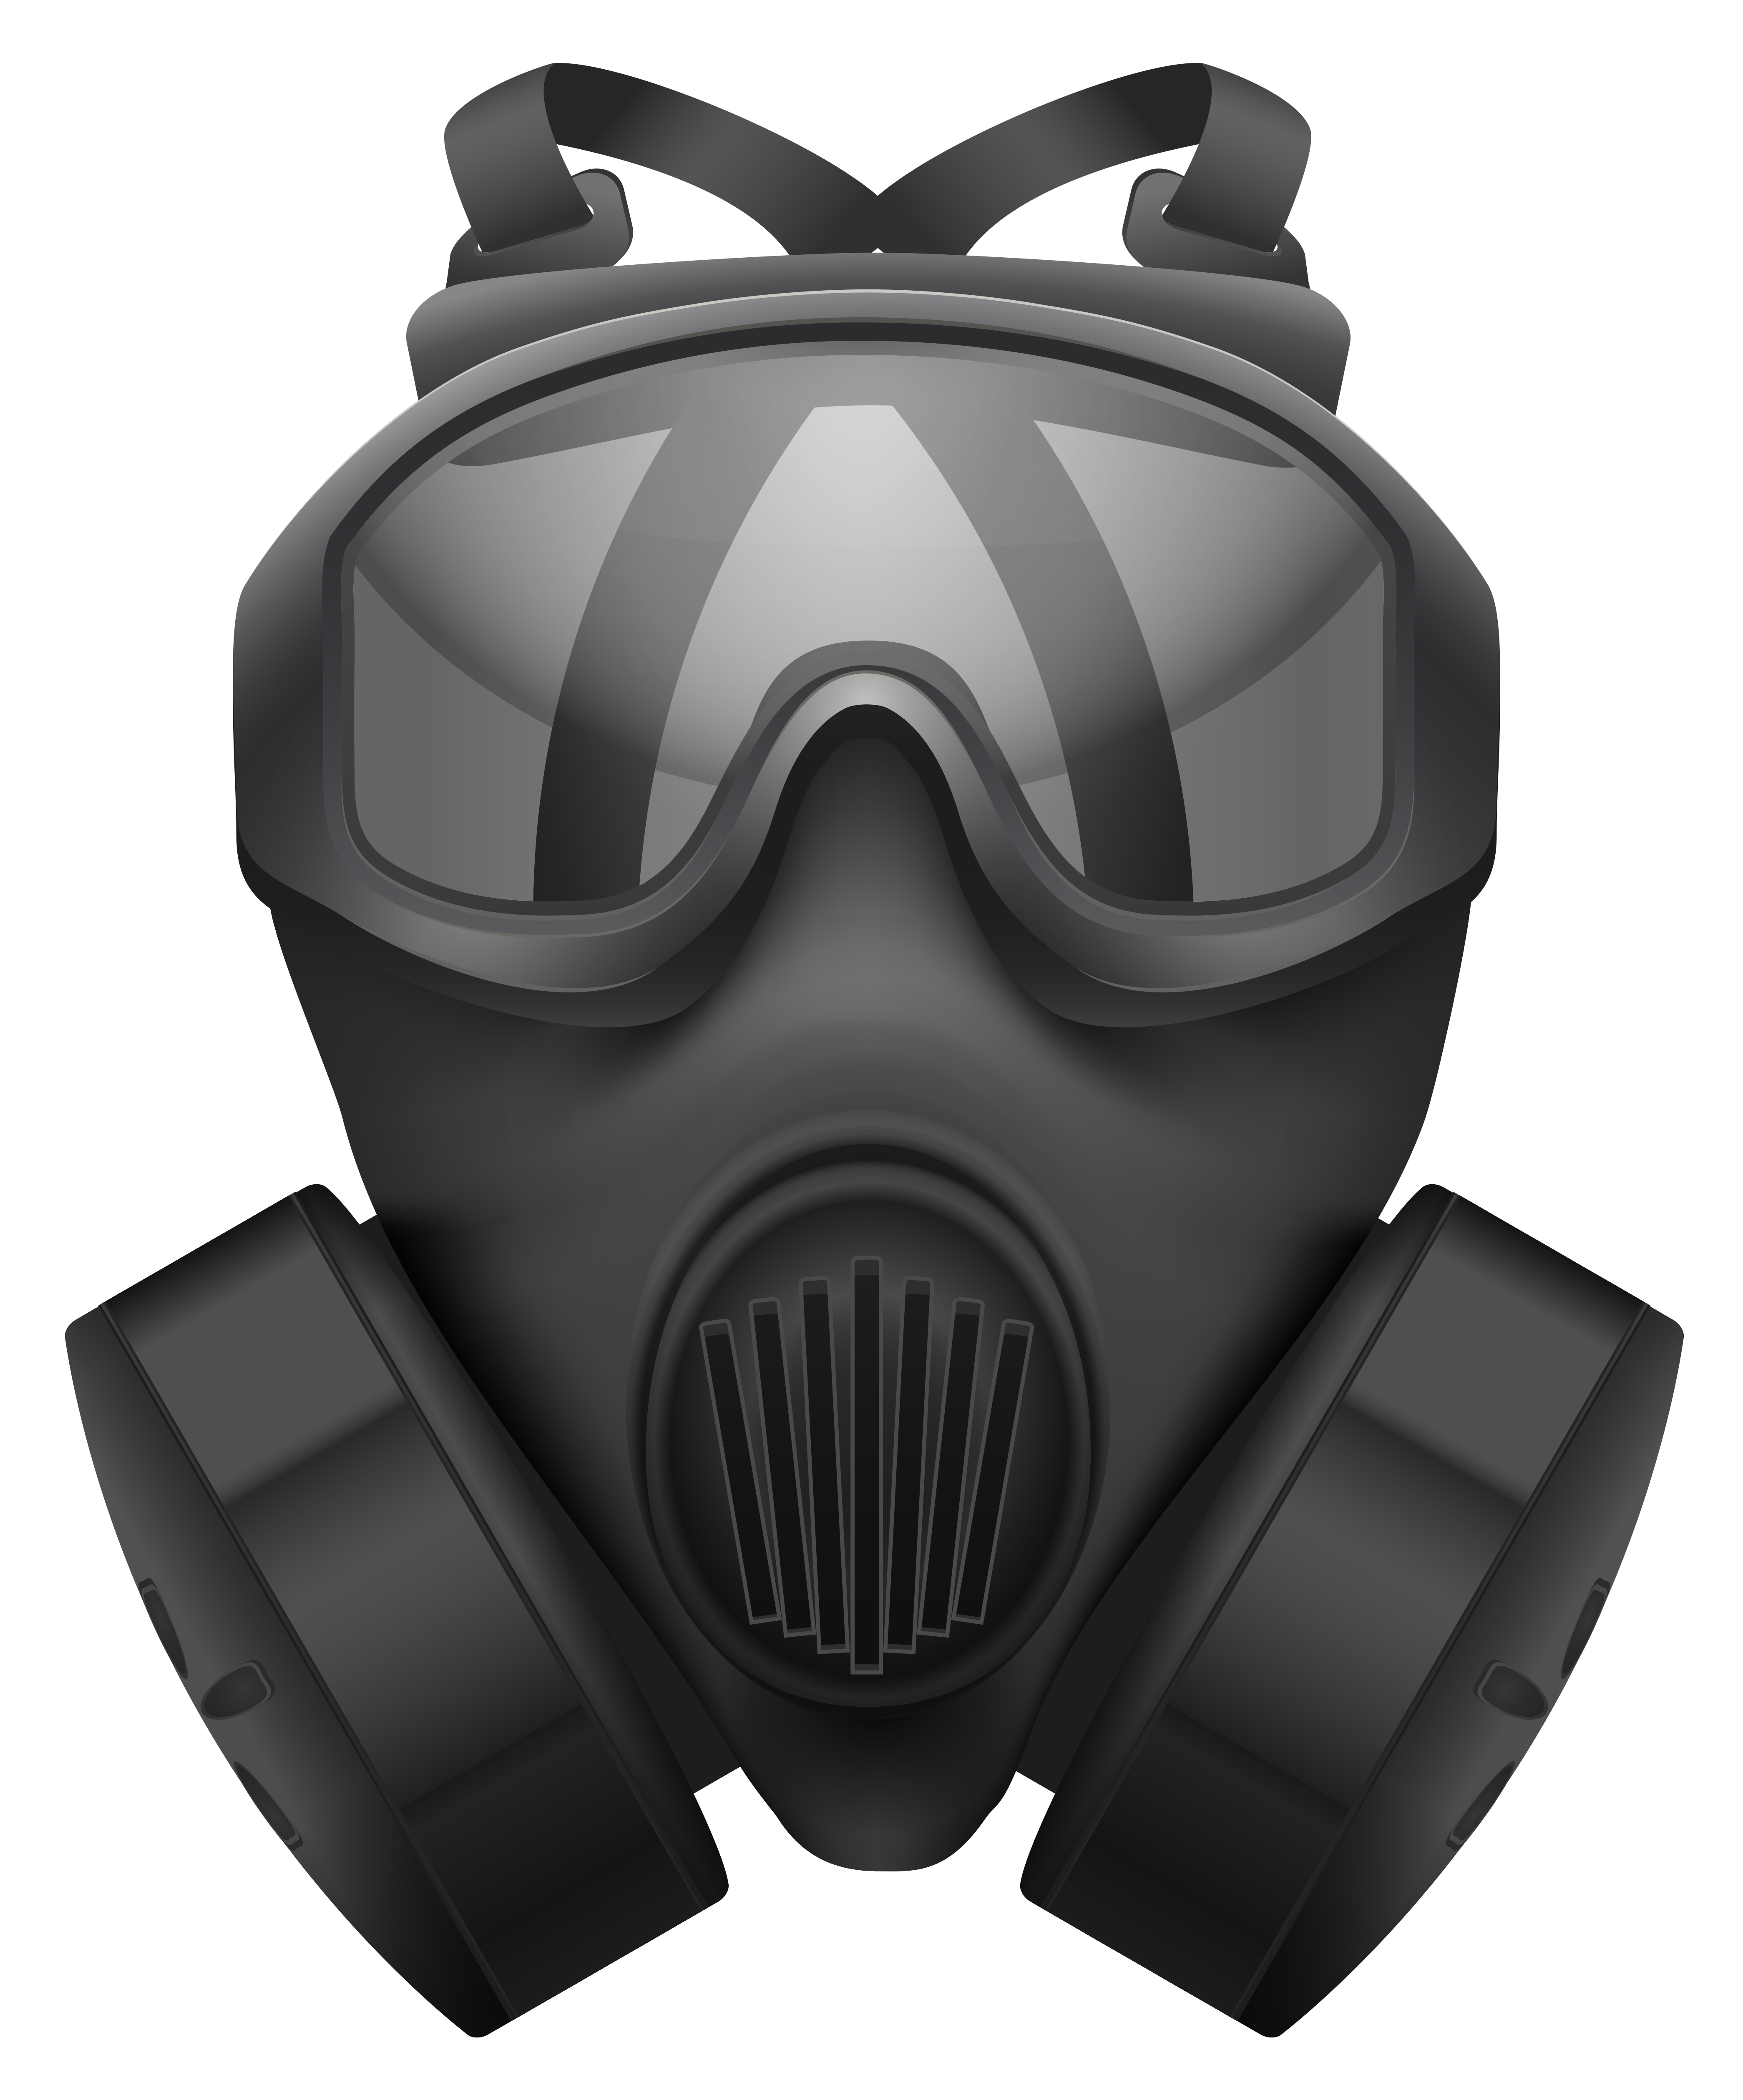 Tactical mask clipart image transparent download Gas mask PNG images free download image transparent download